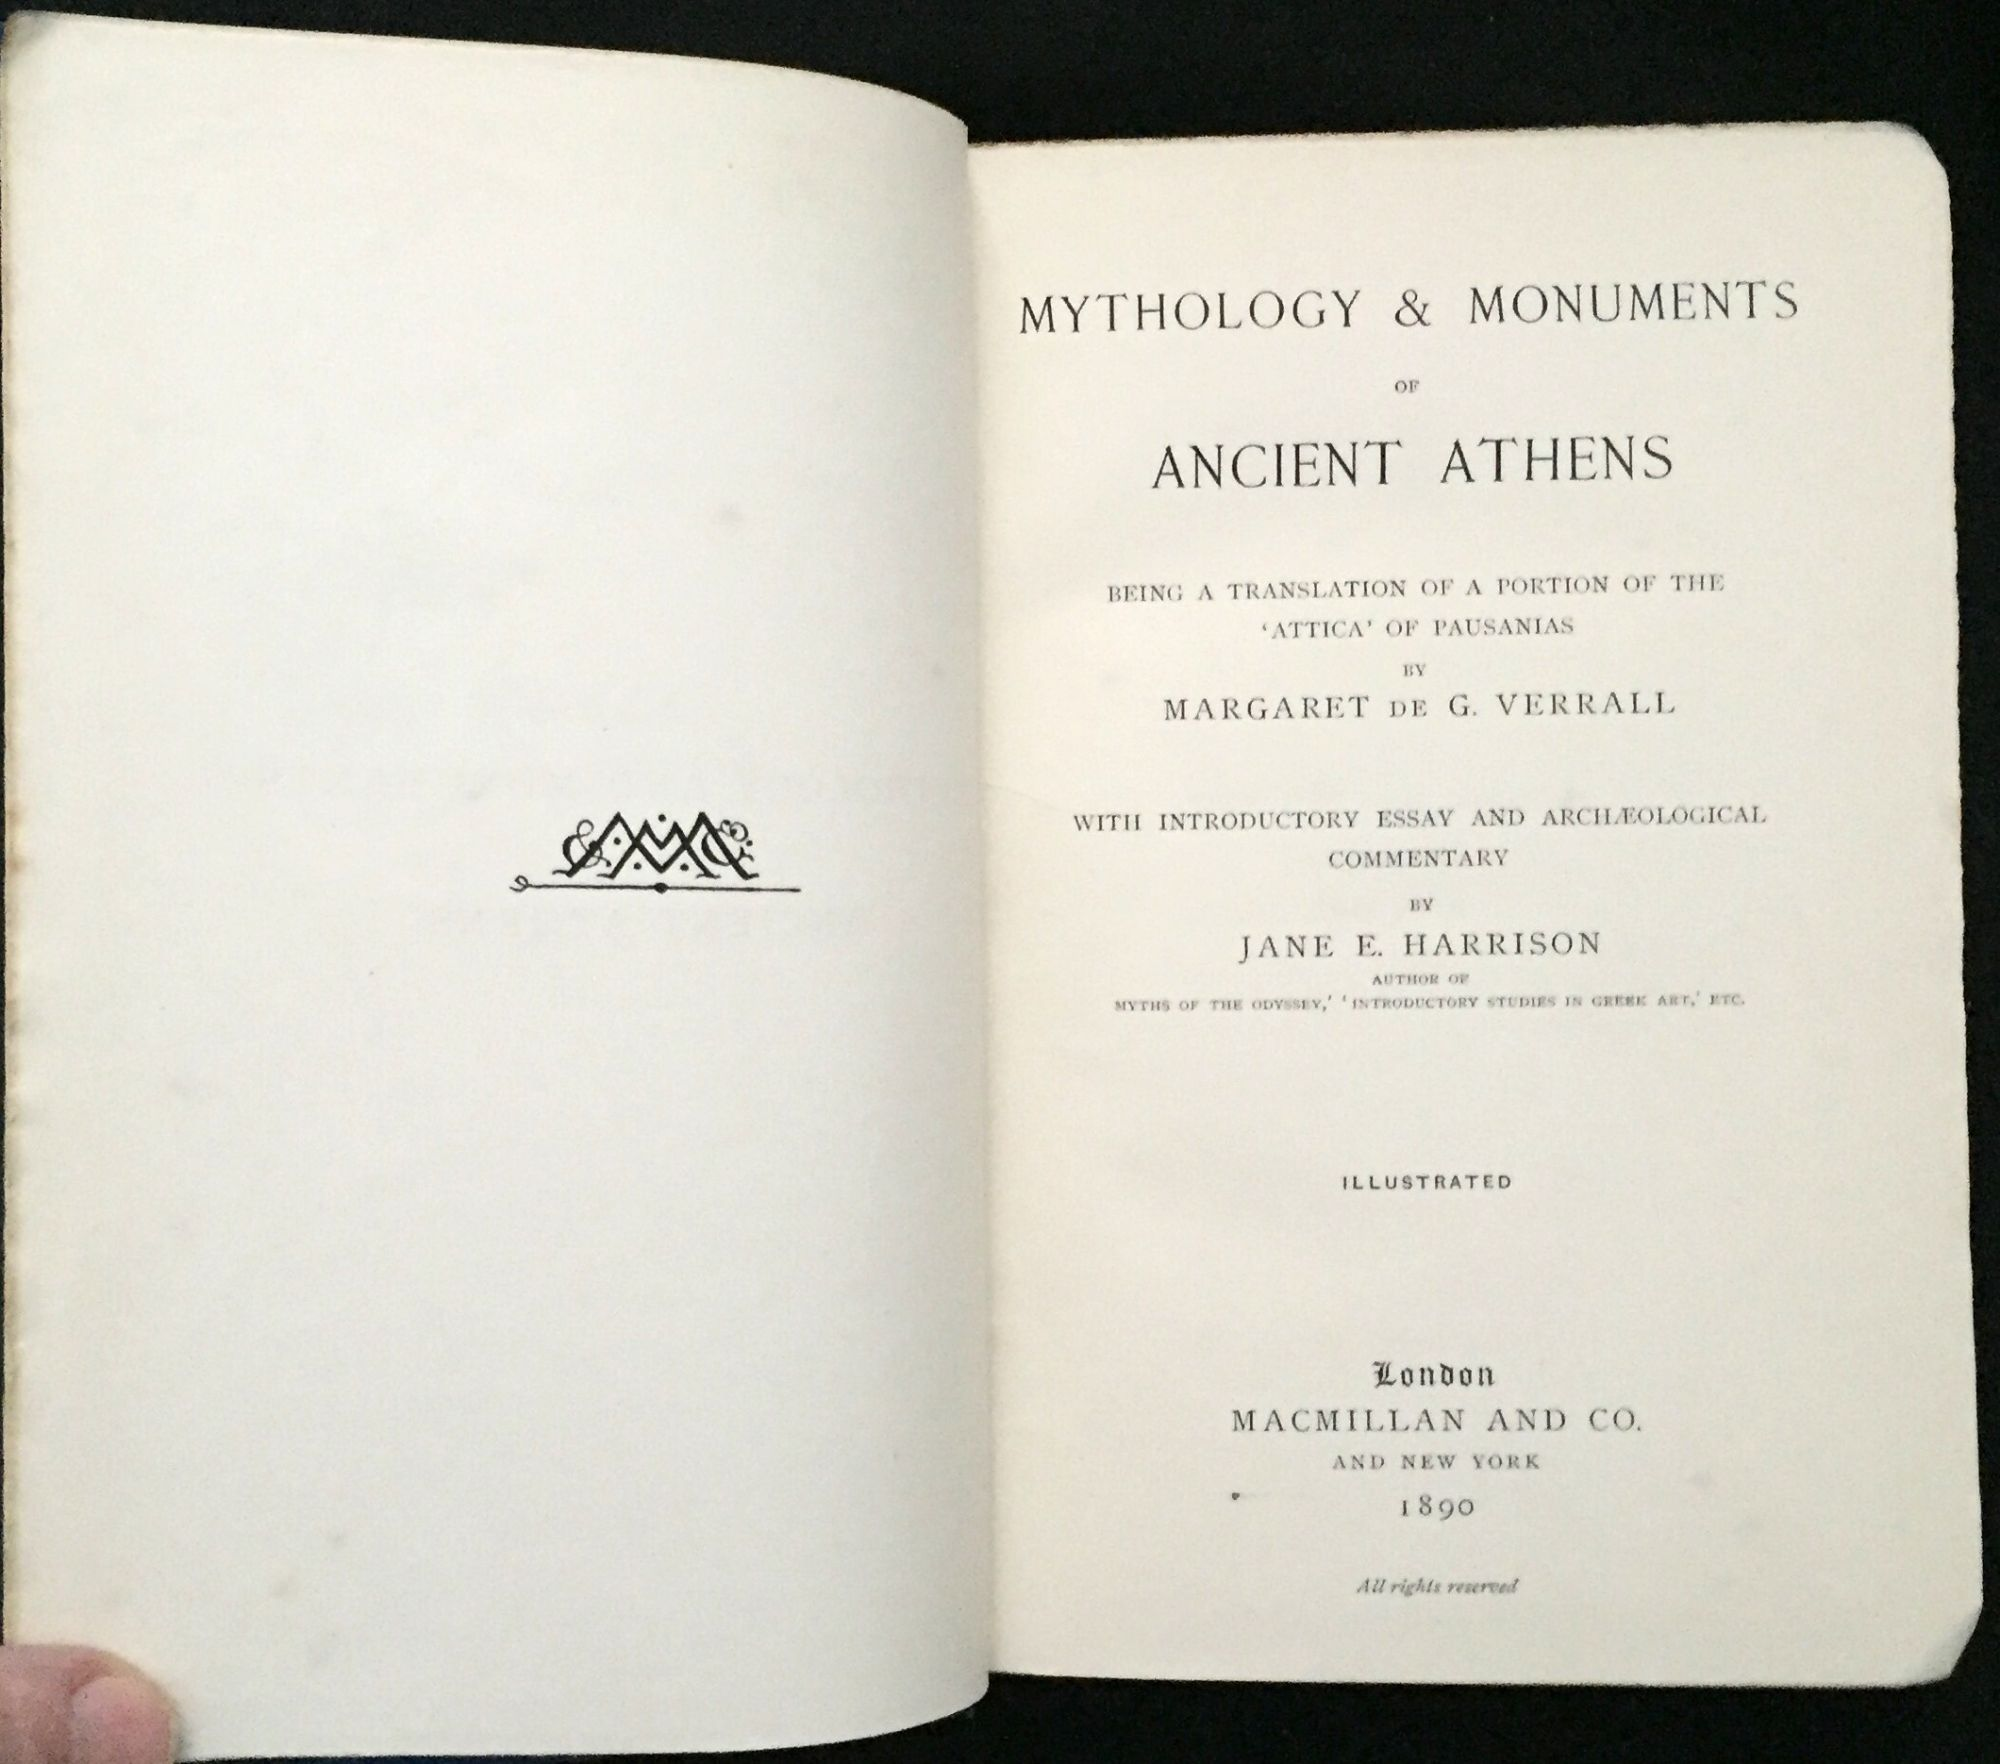 mythology monuments of ancient athens being a translation of a mythology monuments of ancient athens being a translation of a portion of pausanias attica introductory essay and archaeological commentary by